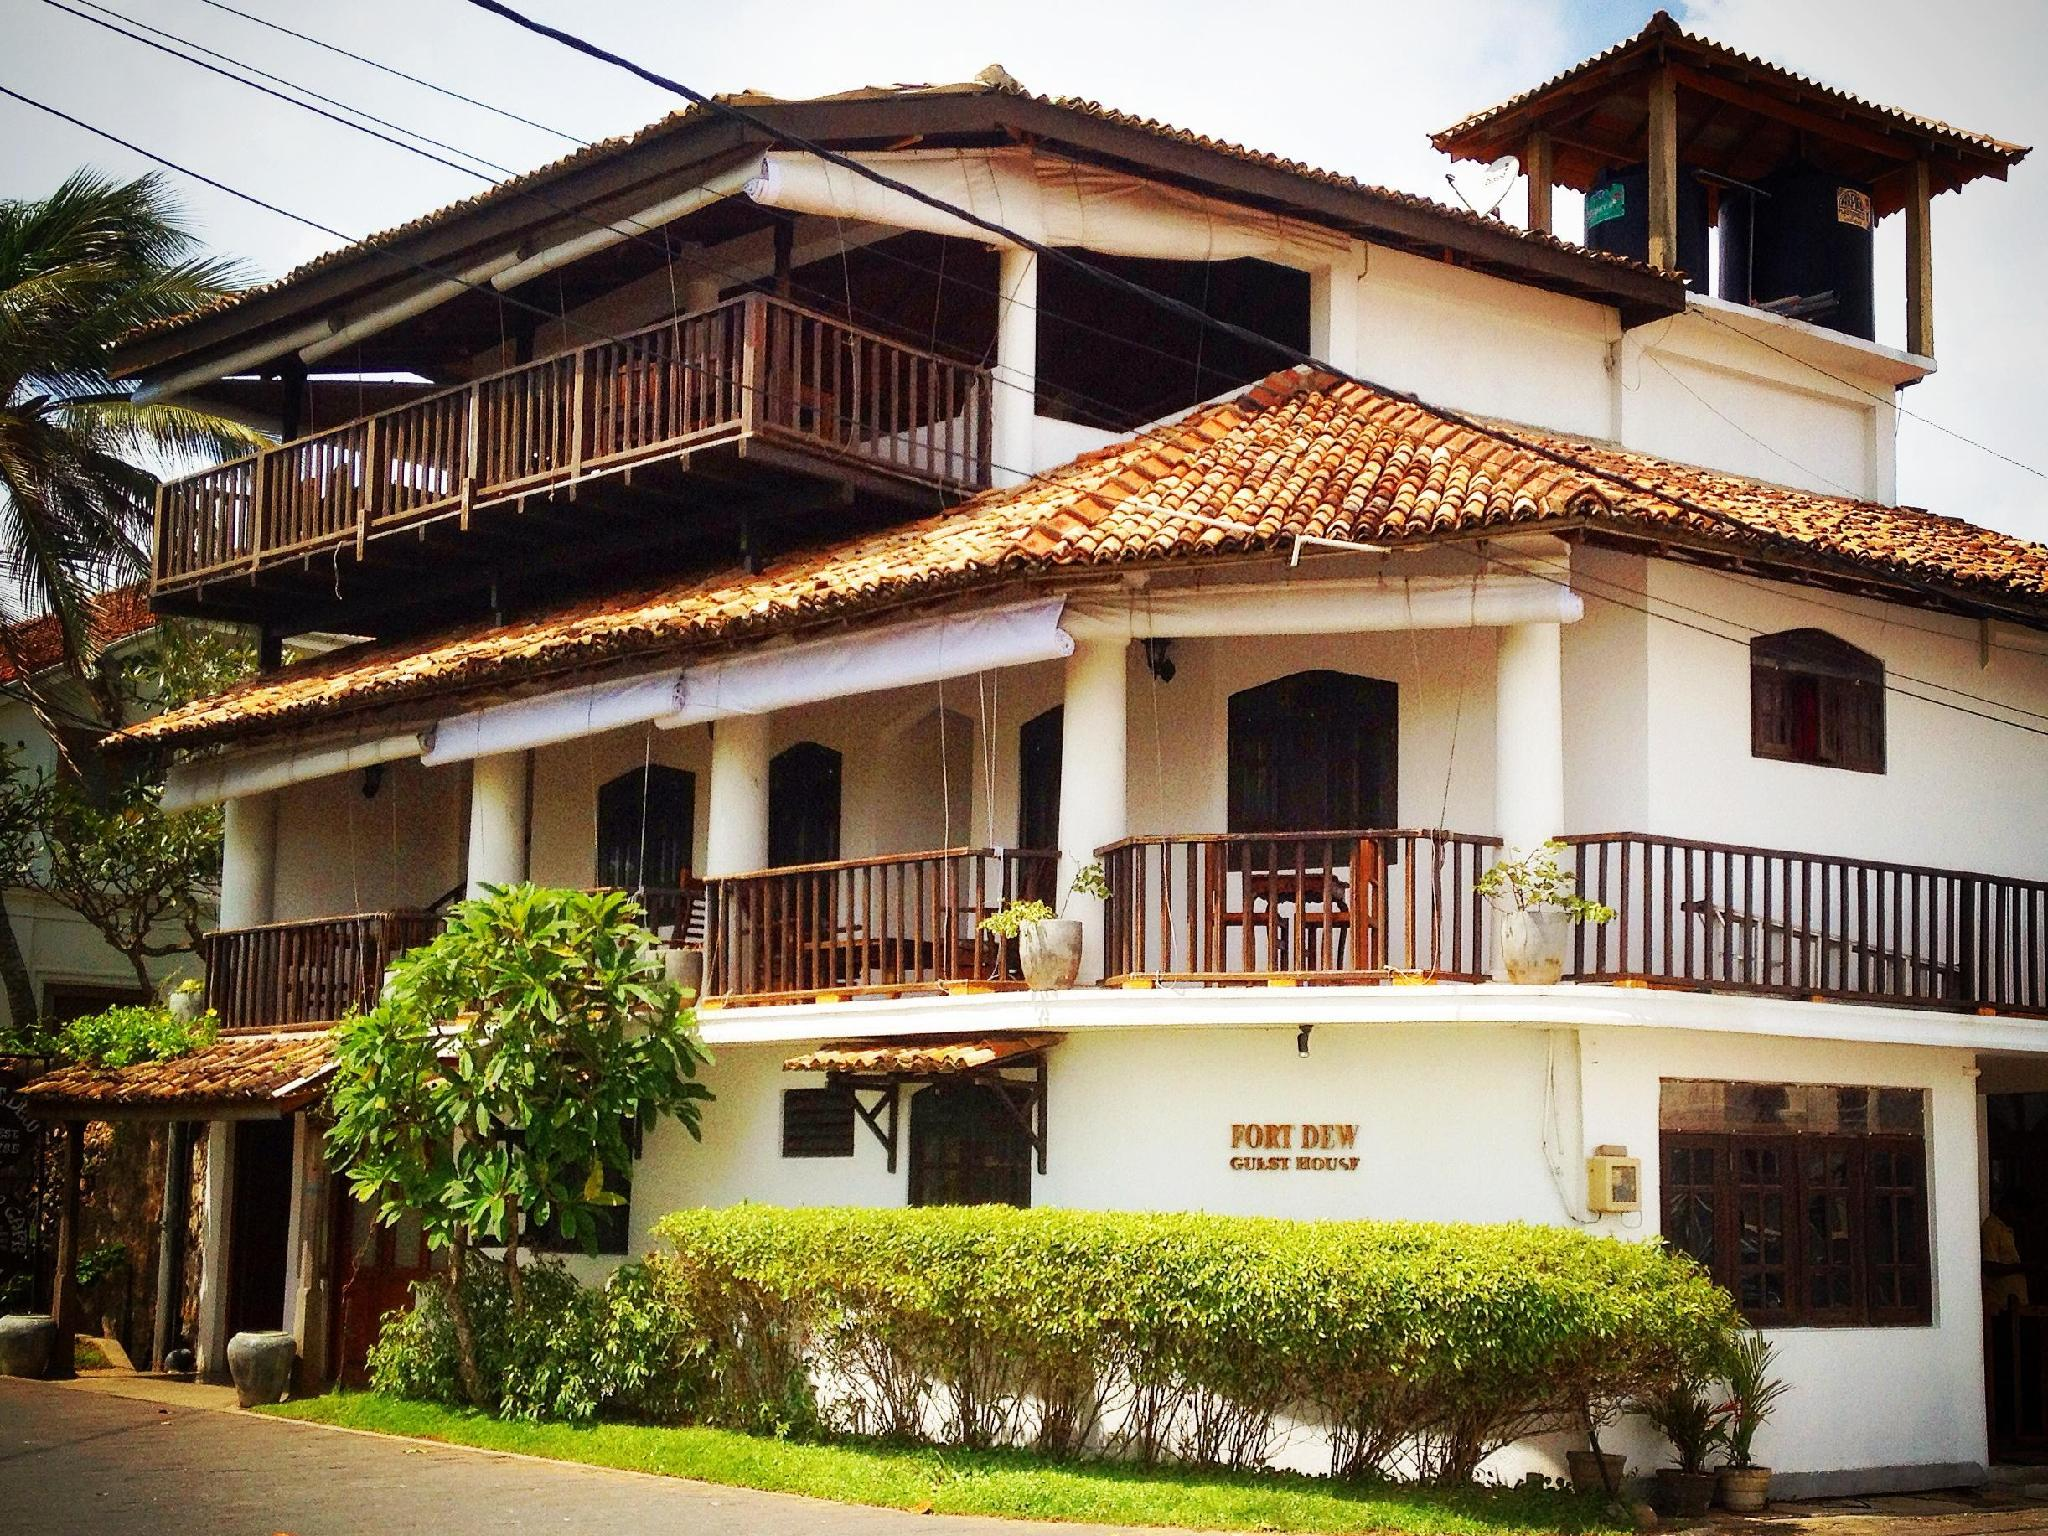 Fort Dew Villa - Hotels and Accommodation in Sri Lanka, Asia